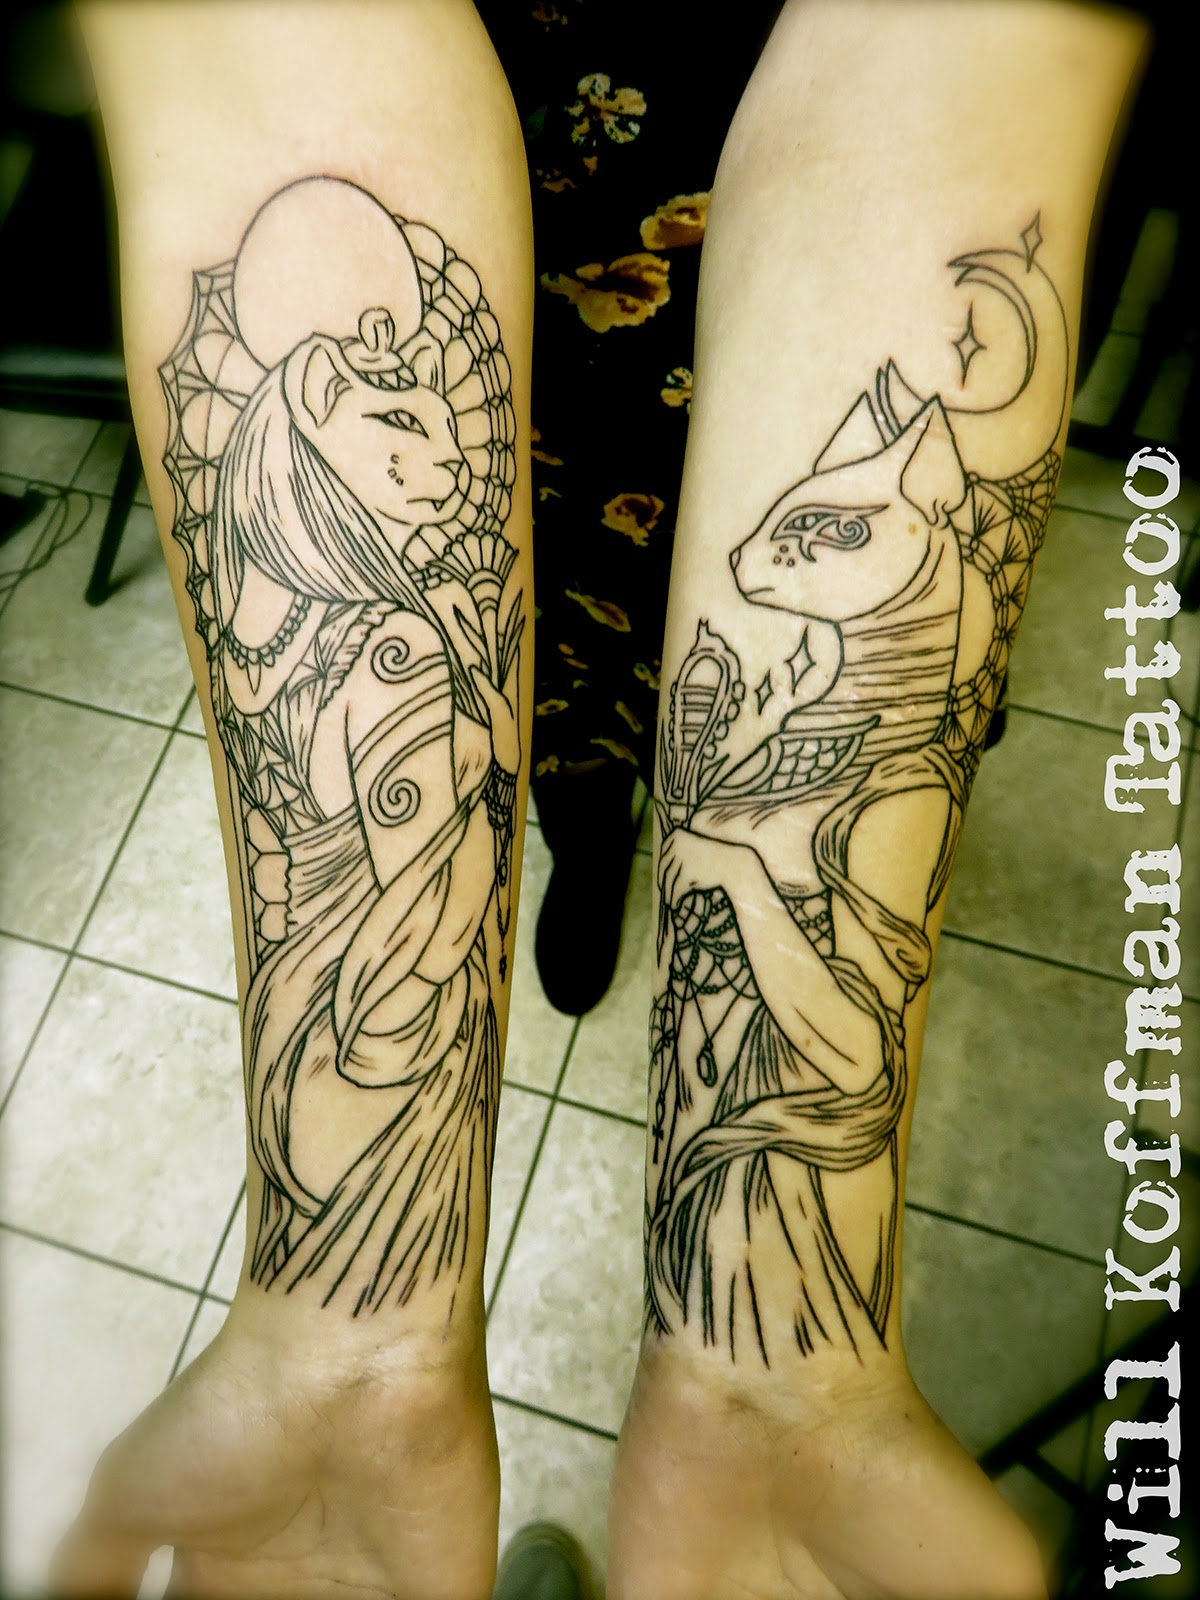 Sekhmet and Bastet Egypt Tattoos on Arm